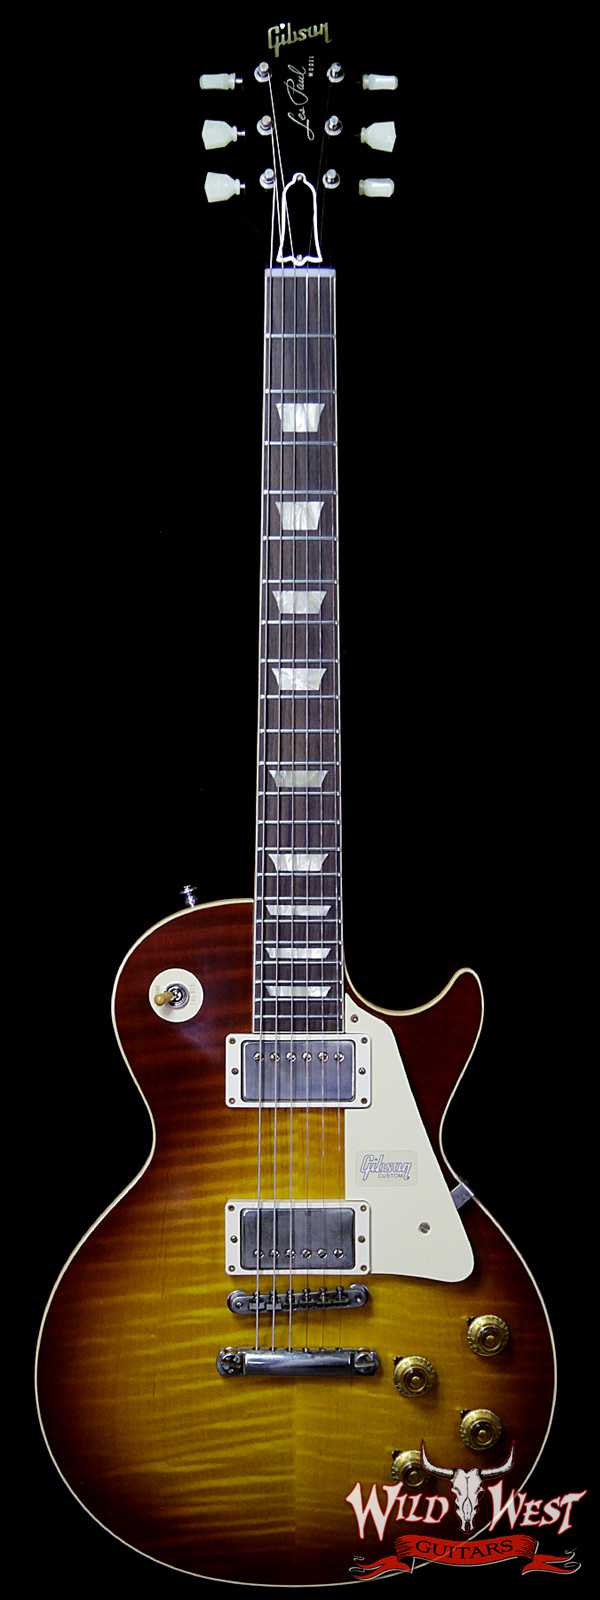 Gibson Custom Shop 60th Anniversary 1959 Les Paul Standard VOS Cherry Teaburst 8.70 LBS